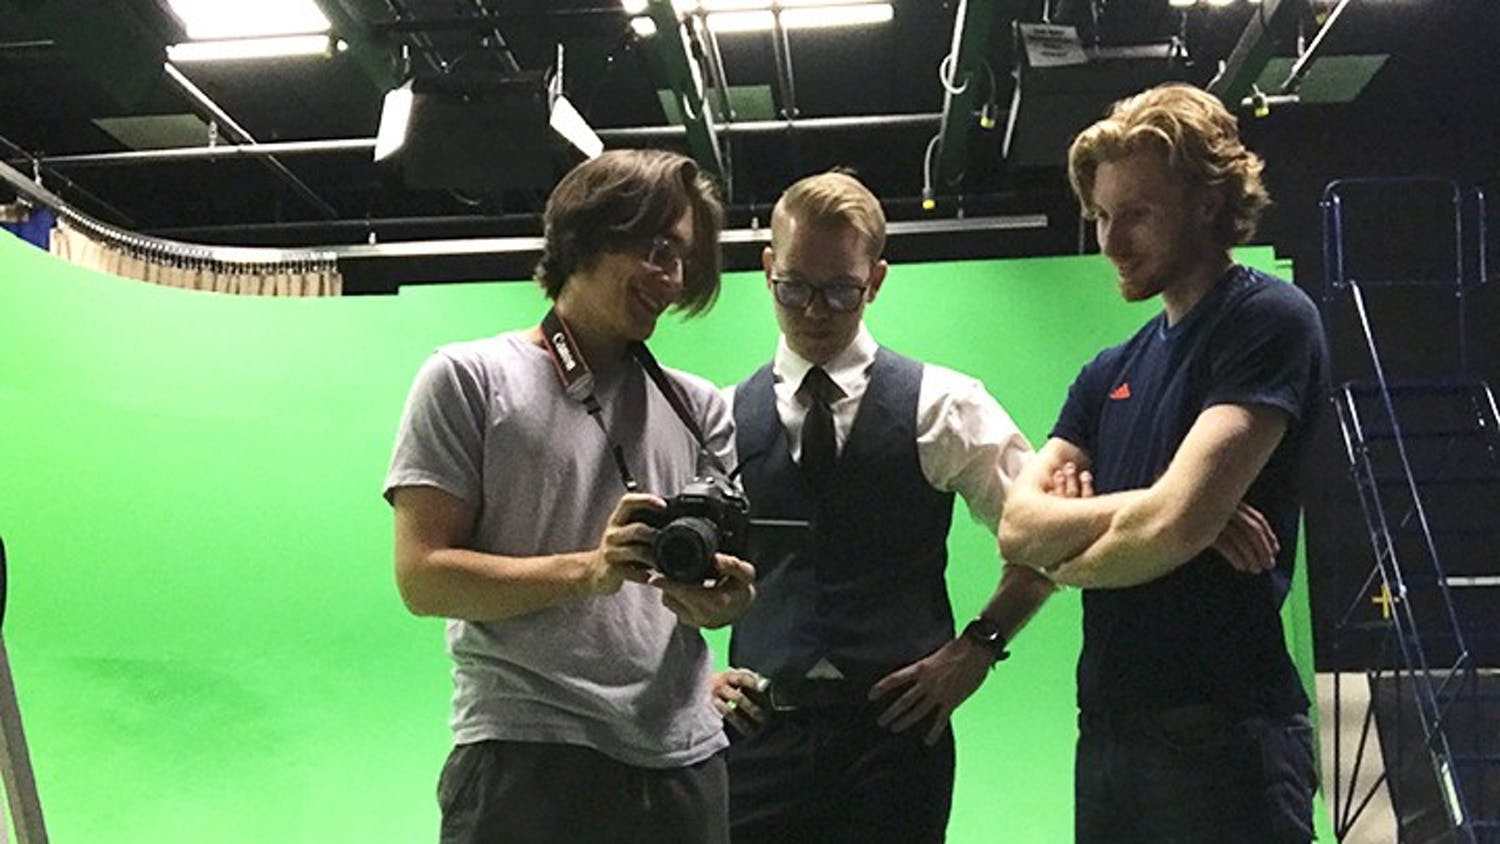 """From left to right: Cole O'Neill, Jake Parlor and Wyatt Lasche while filming """"Opinionated."""""""